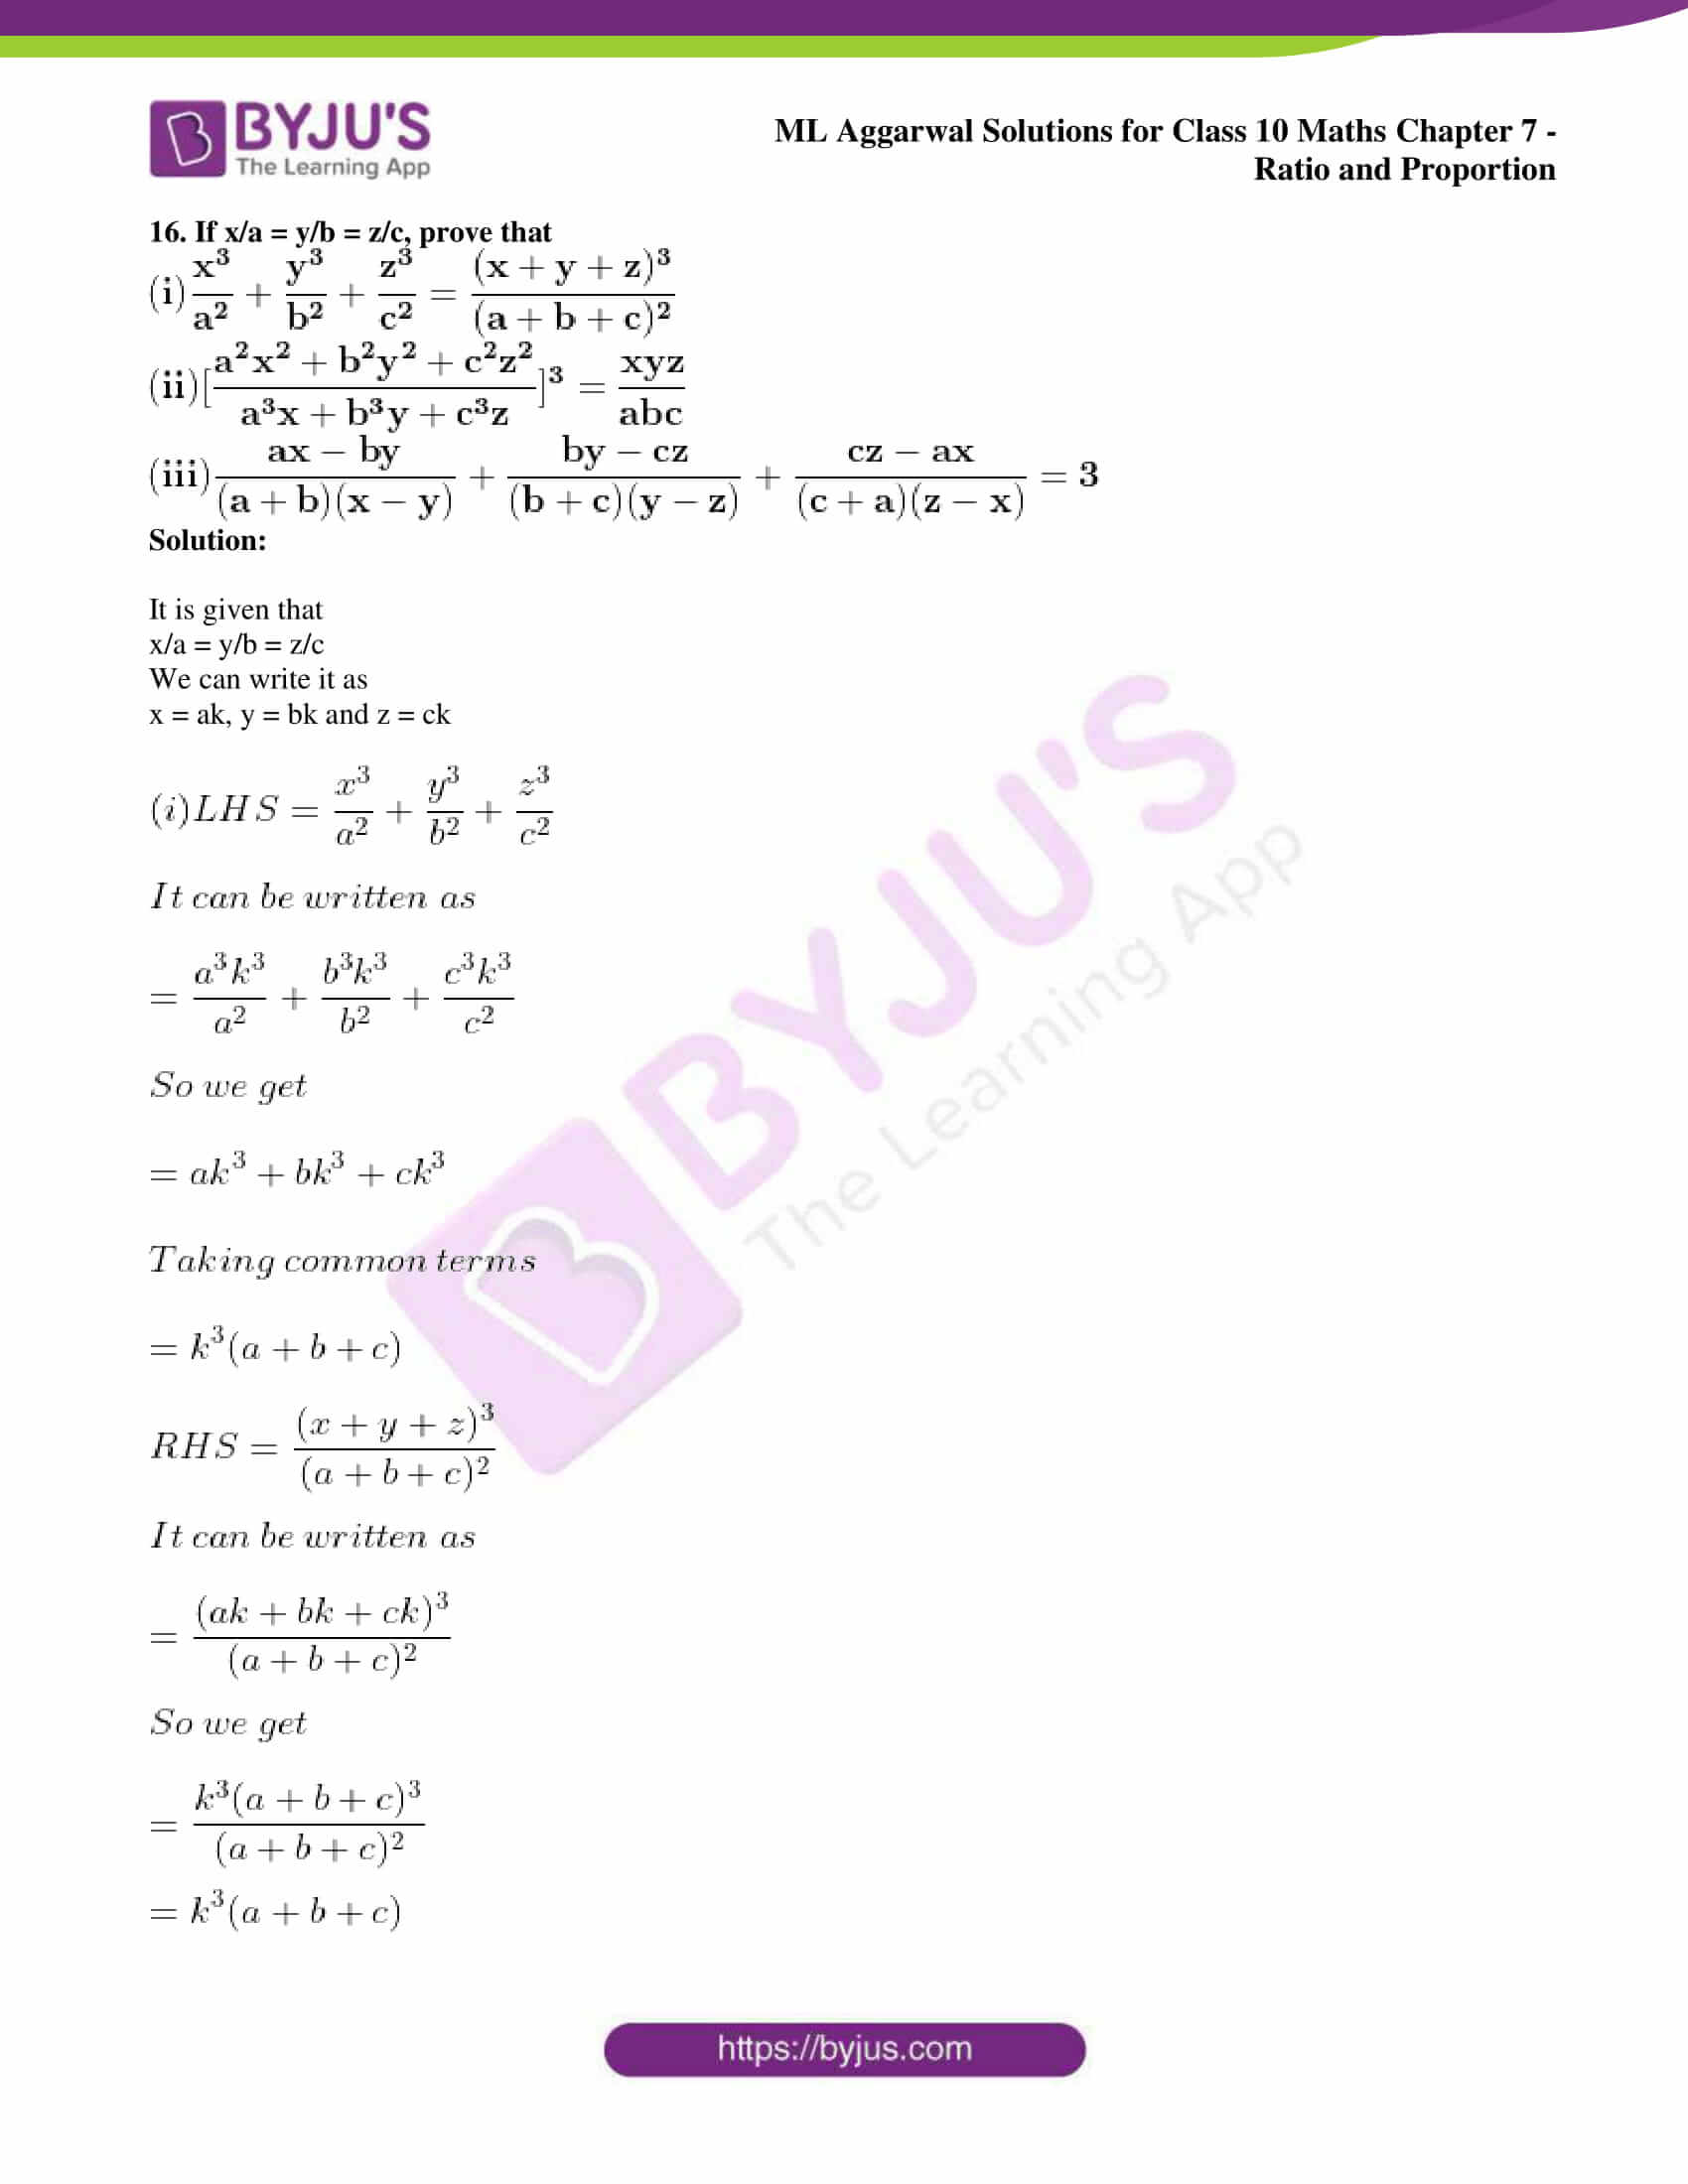 ml aggarwal solutions for class 10 maths chapter 7 23